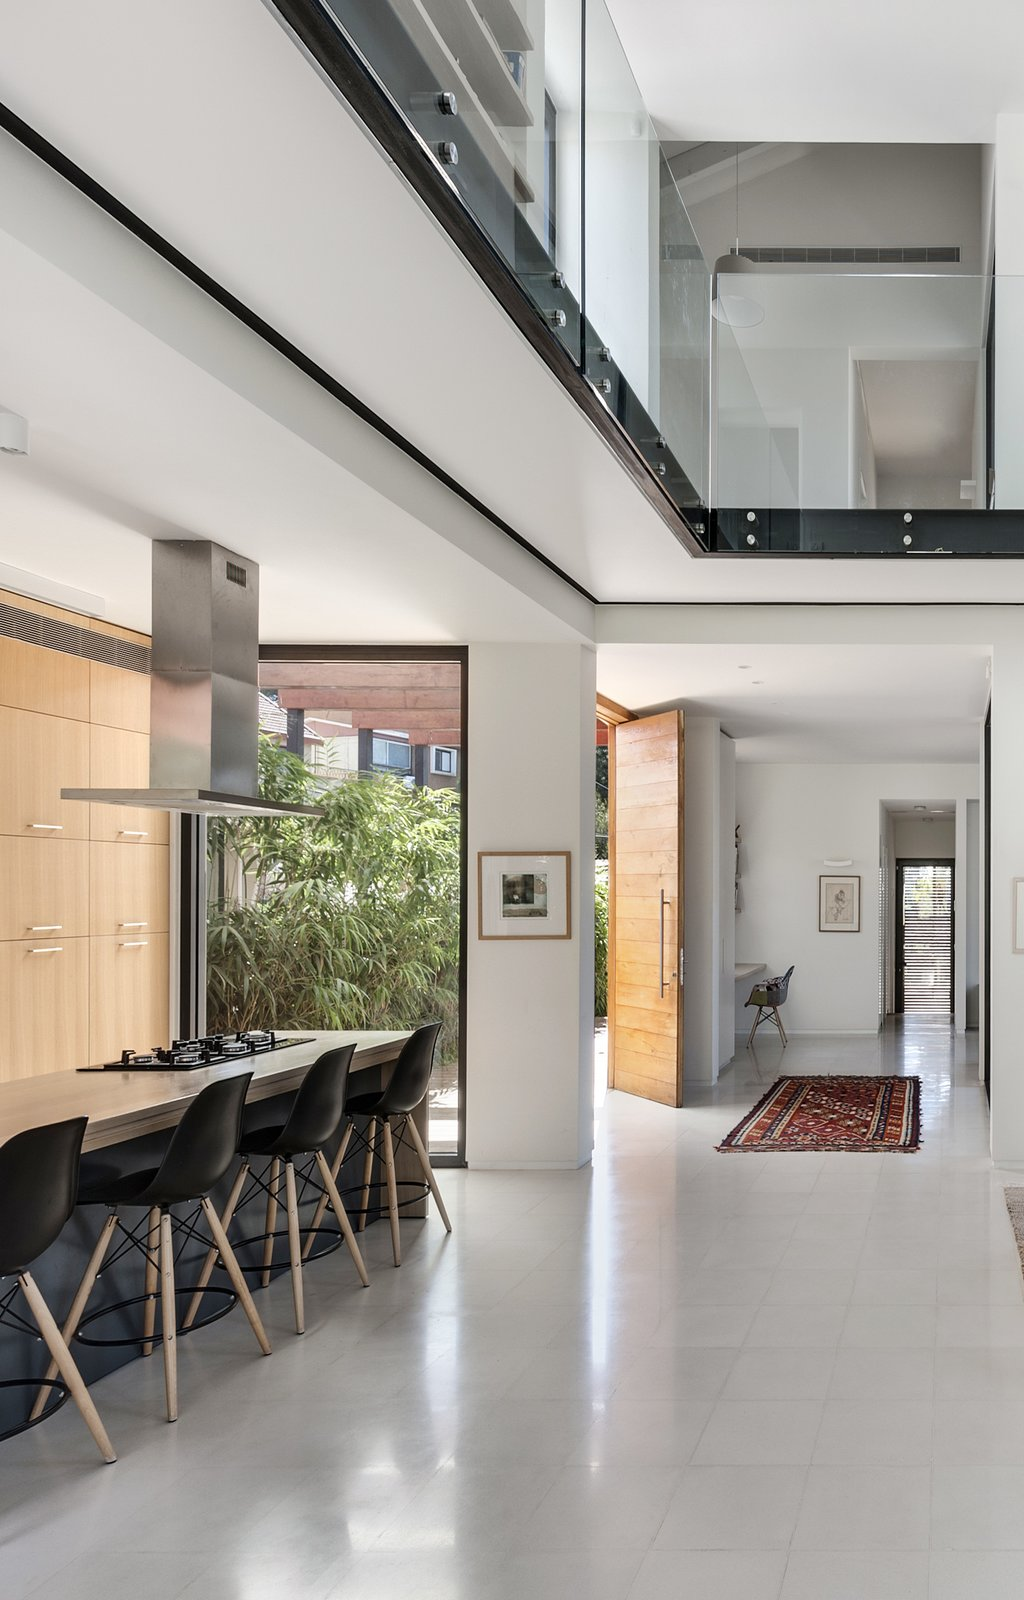 Kitchen, Wood Counter, Granite Counter, Ceiling Lighting, and Wood Cabinet Ravit Dvir Architecture and Design  The House in Harutzim